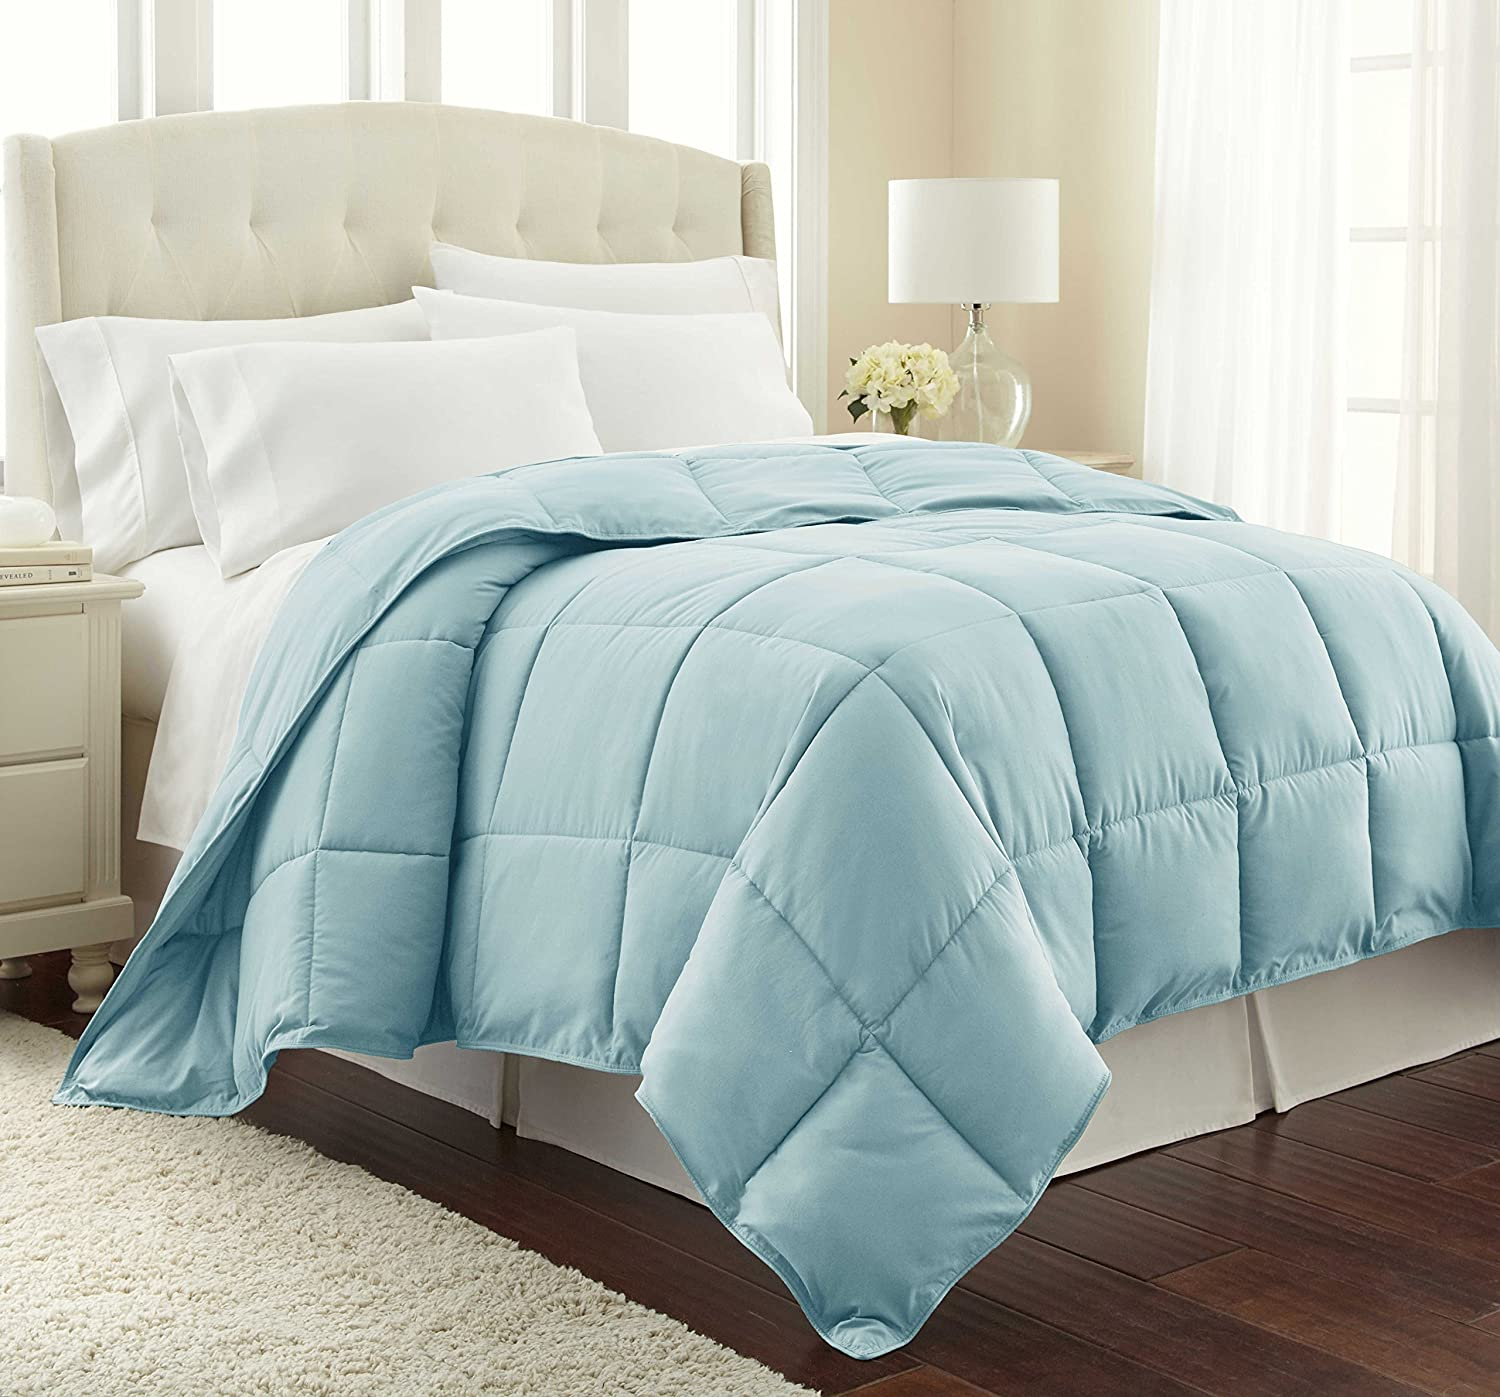 Southshore Fine Linens - Vilano Springs - - Down Alternate Weight Comforter - Sky Blue